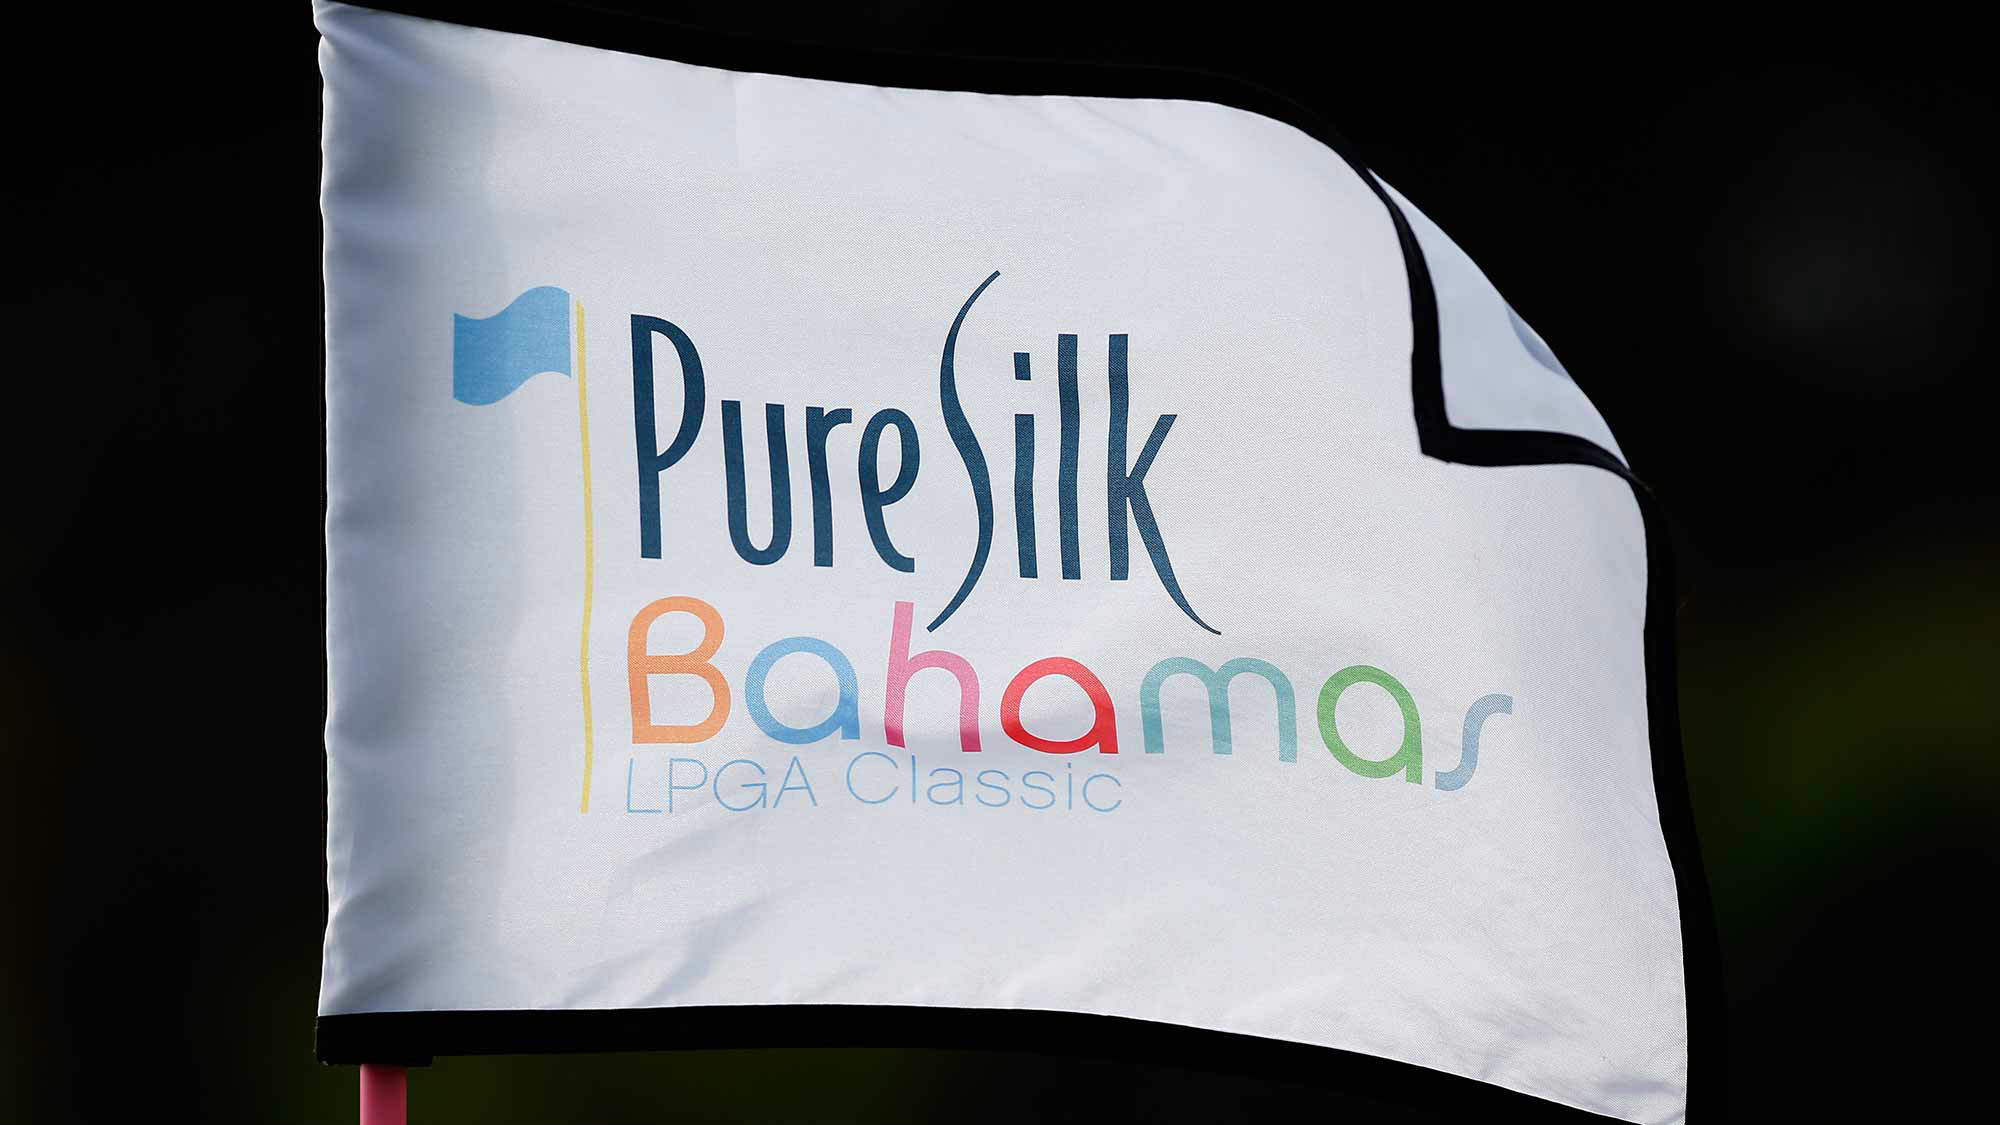 Image result for Pure silk lpga bahamas classic 2017